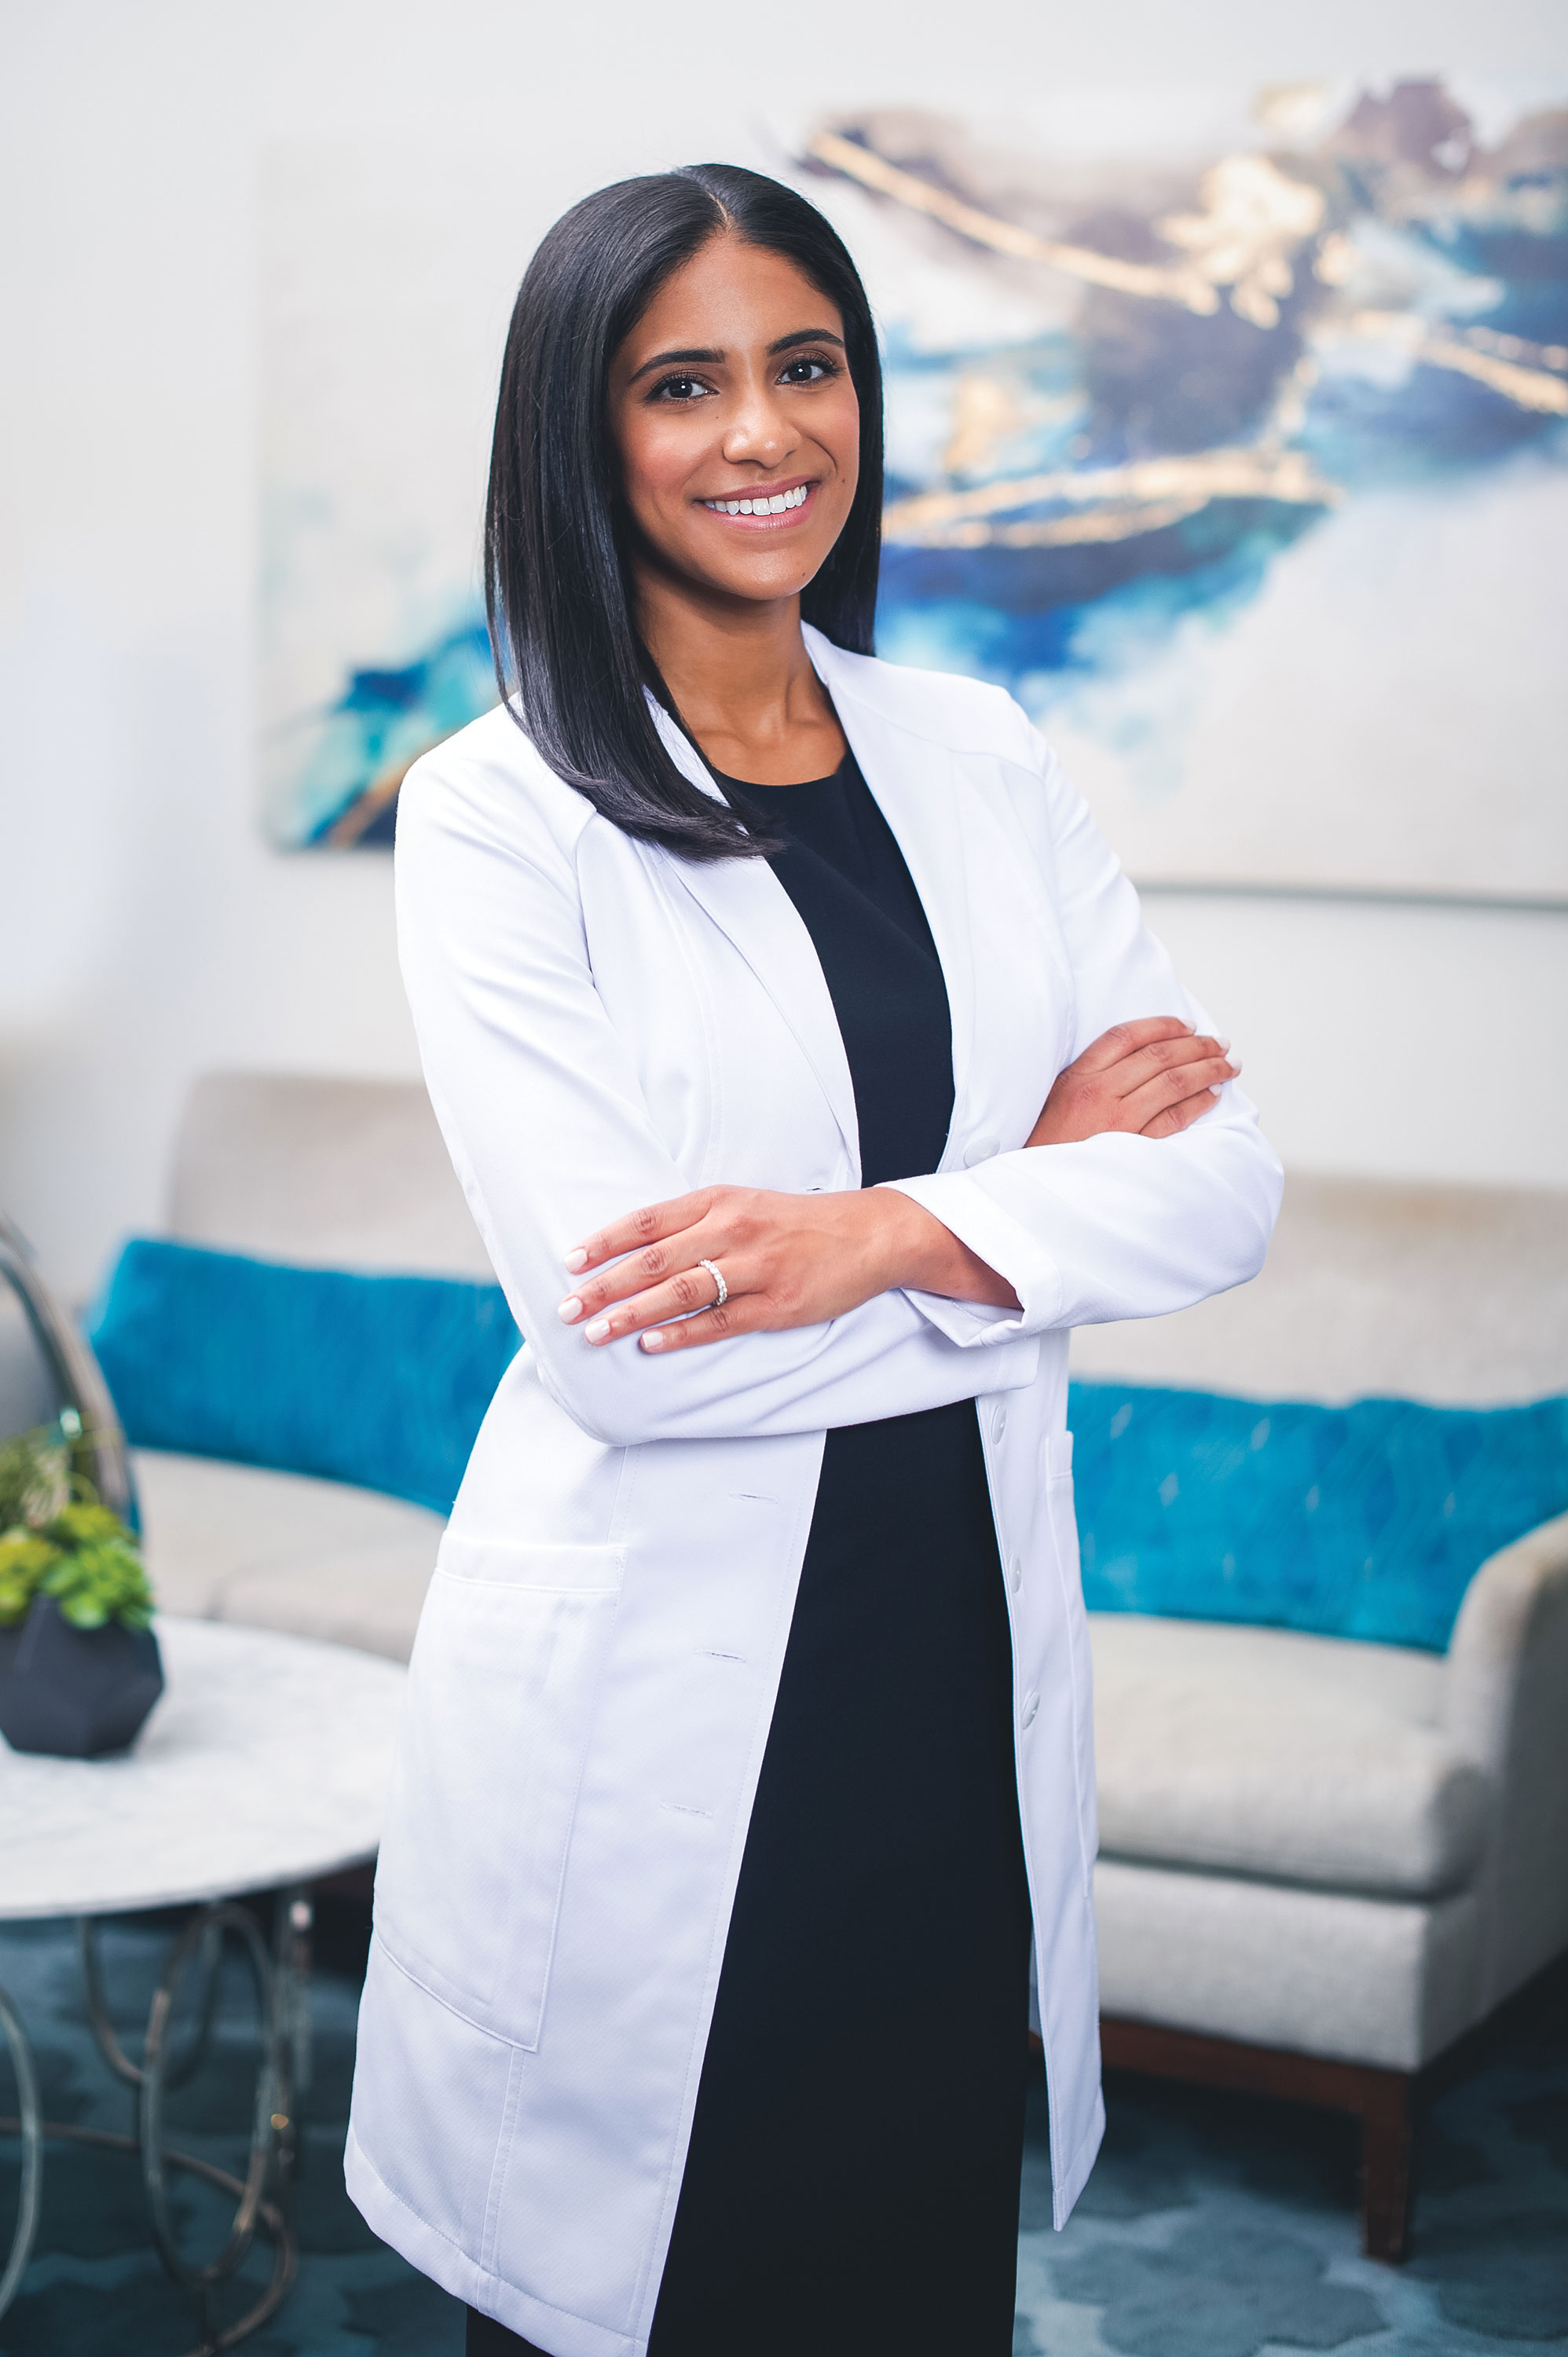 Dr. Amy Hassan